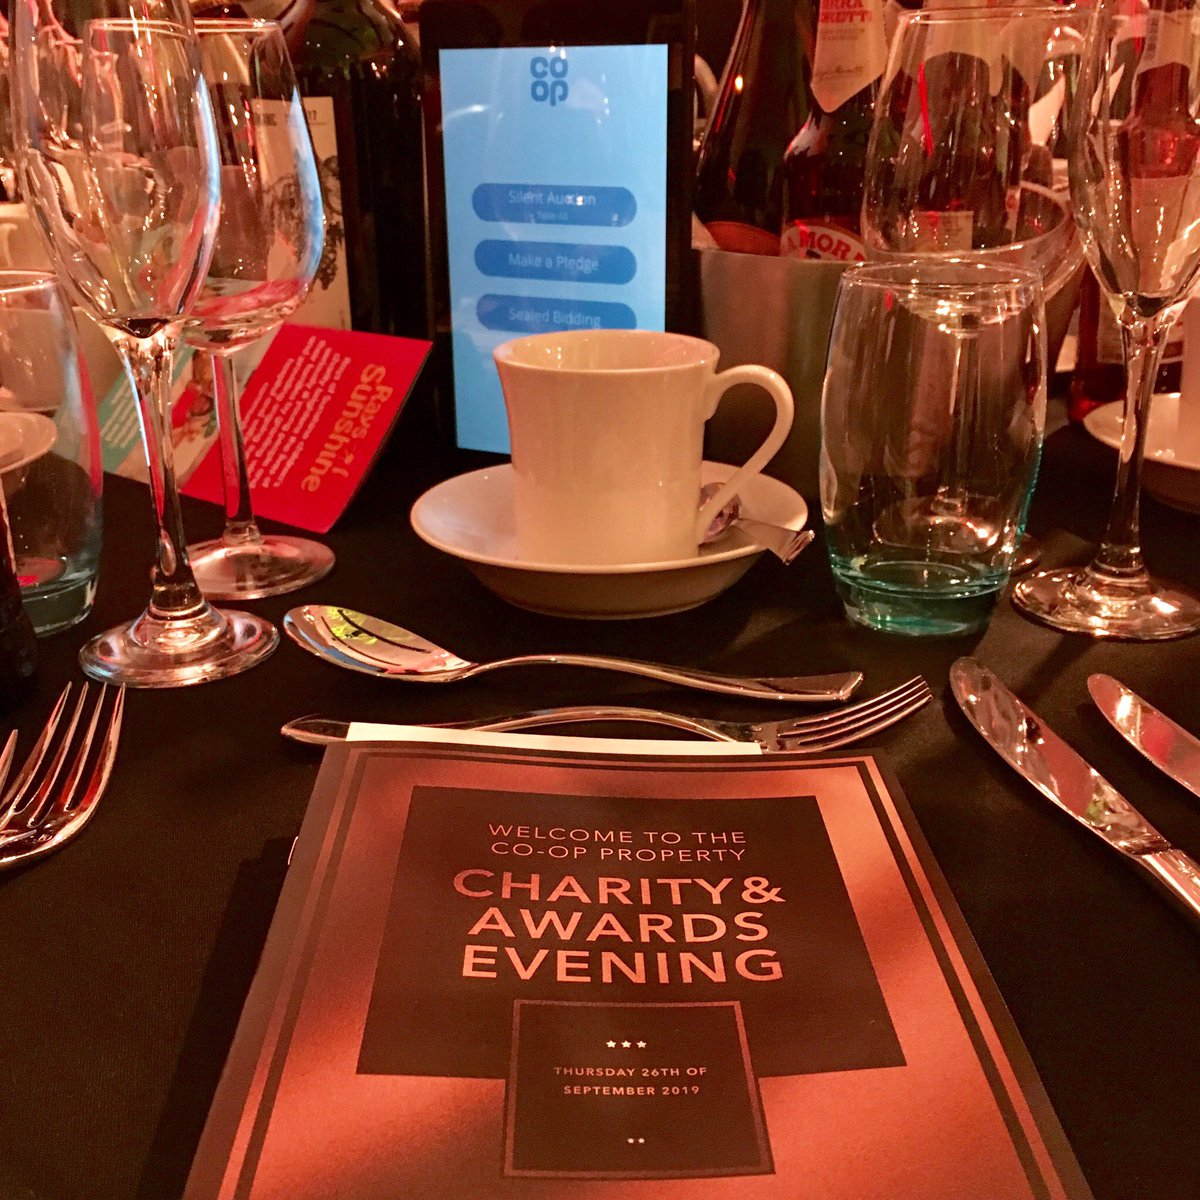 Tonight the Nuttall's team are proud to be attending the Co-op Property Charity & Awards Evening. Good luck to all nominees and here's to a brilliant evening! #coopawards #nuttall #flexeserve https://t.co/YyiwZ1cm2w